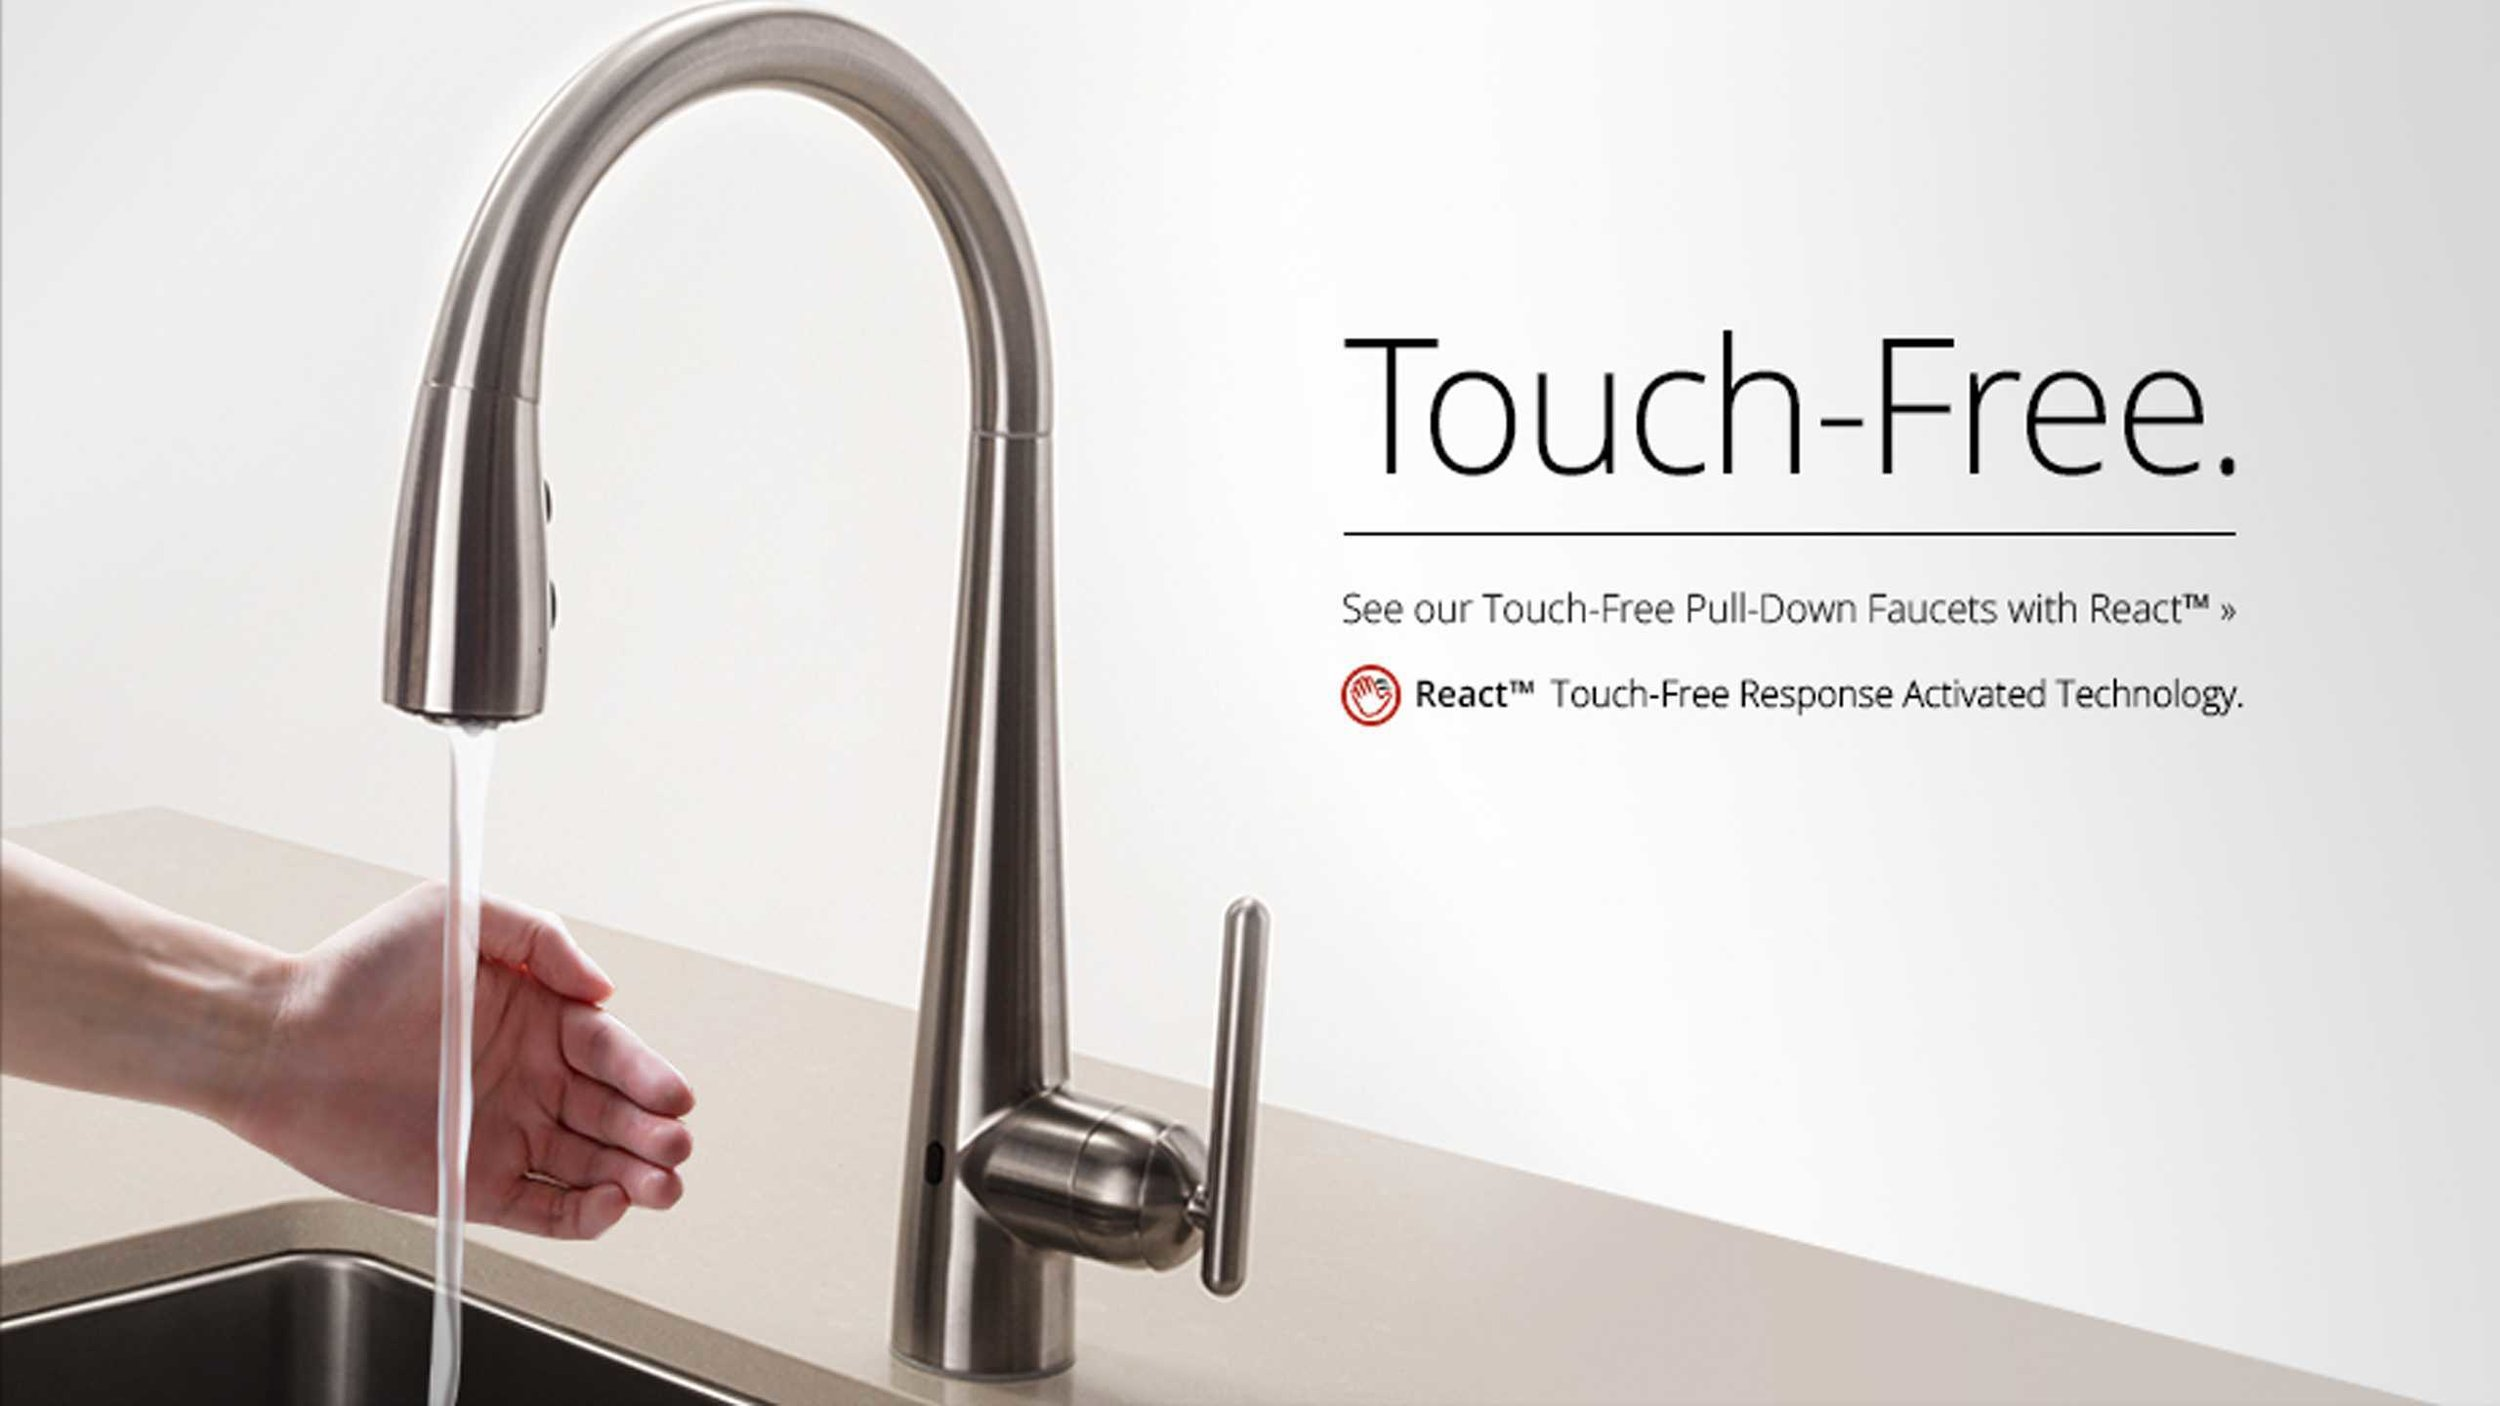 best-touchless-kitchen-faucet-collection-also-fabulous-images-costco-pictures-touch-activated-faucets-stainless-kohler-almond-sink-color-palette-white-home-depot-moen.jpg